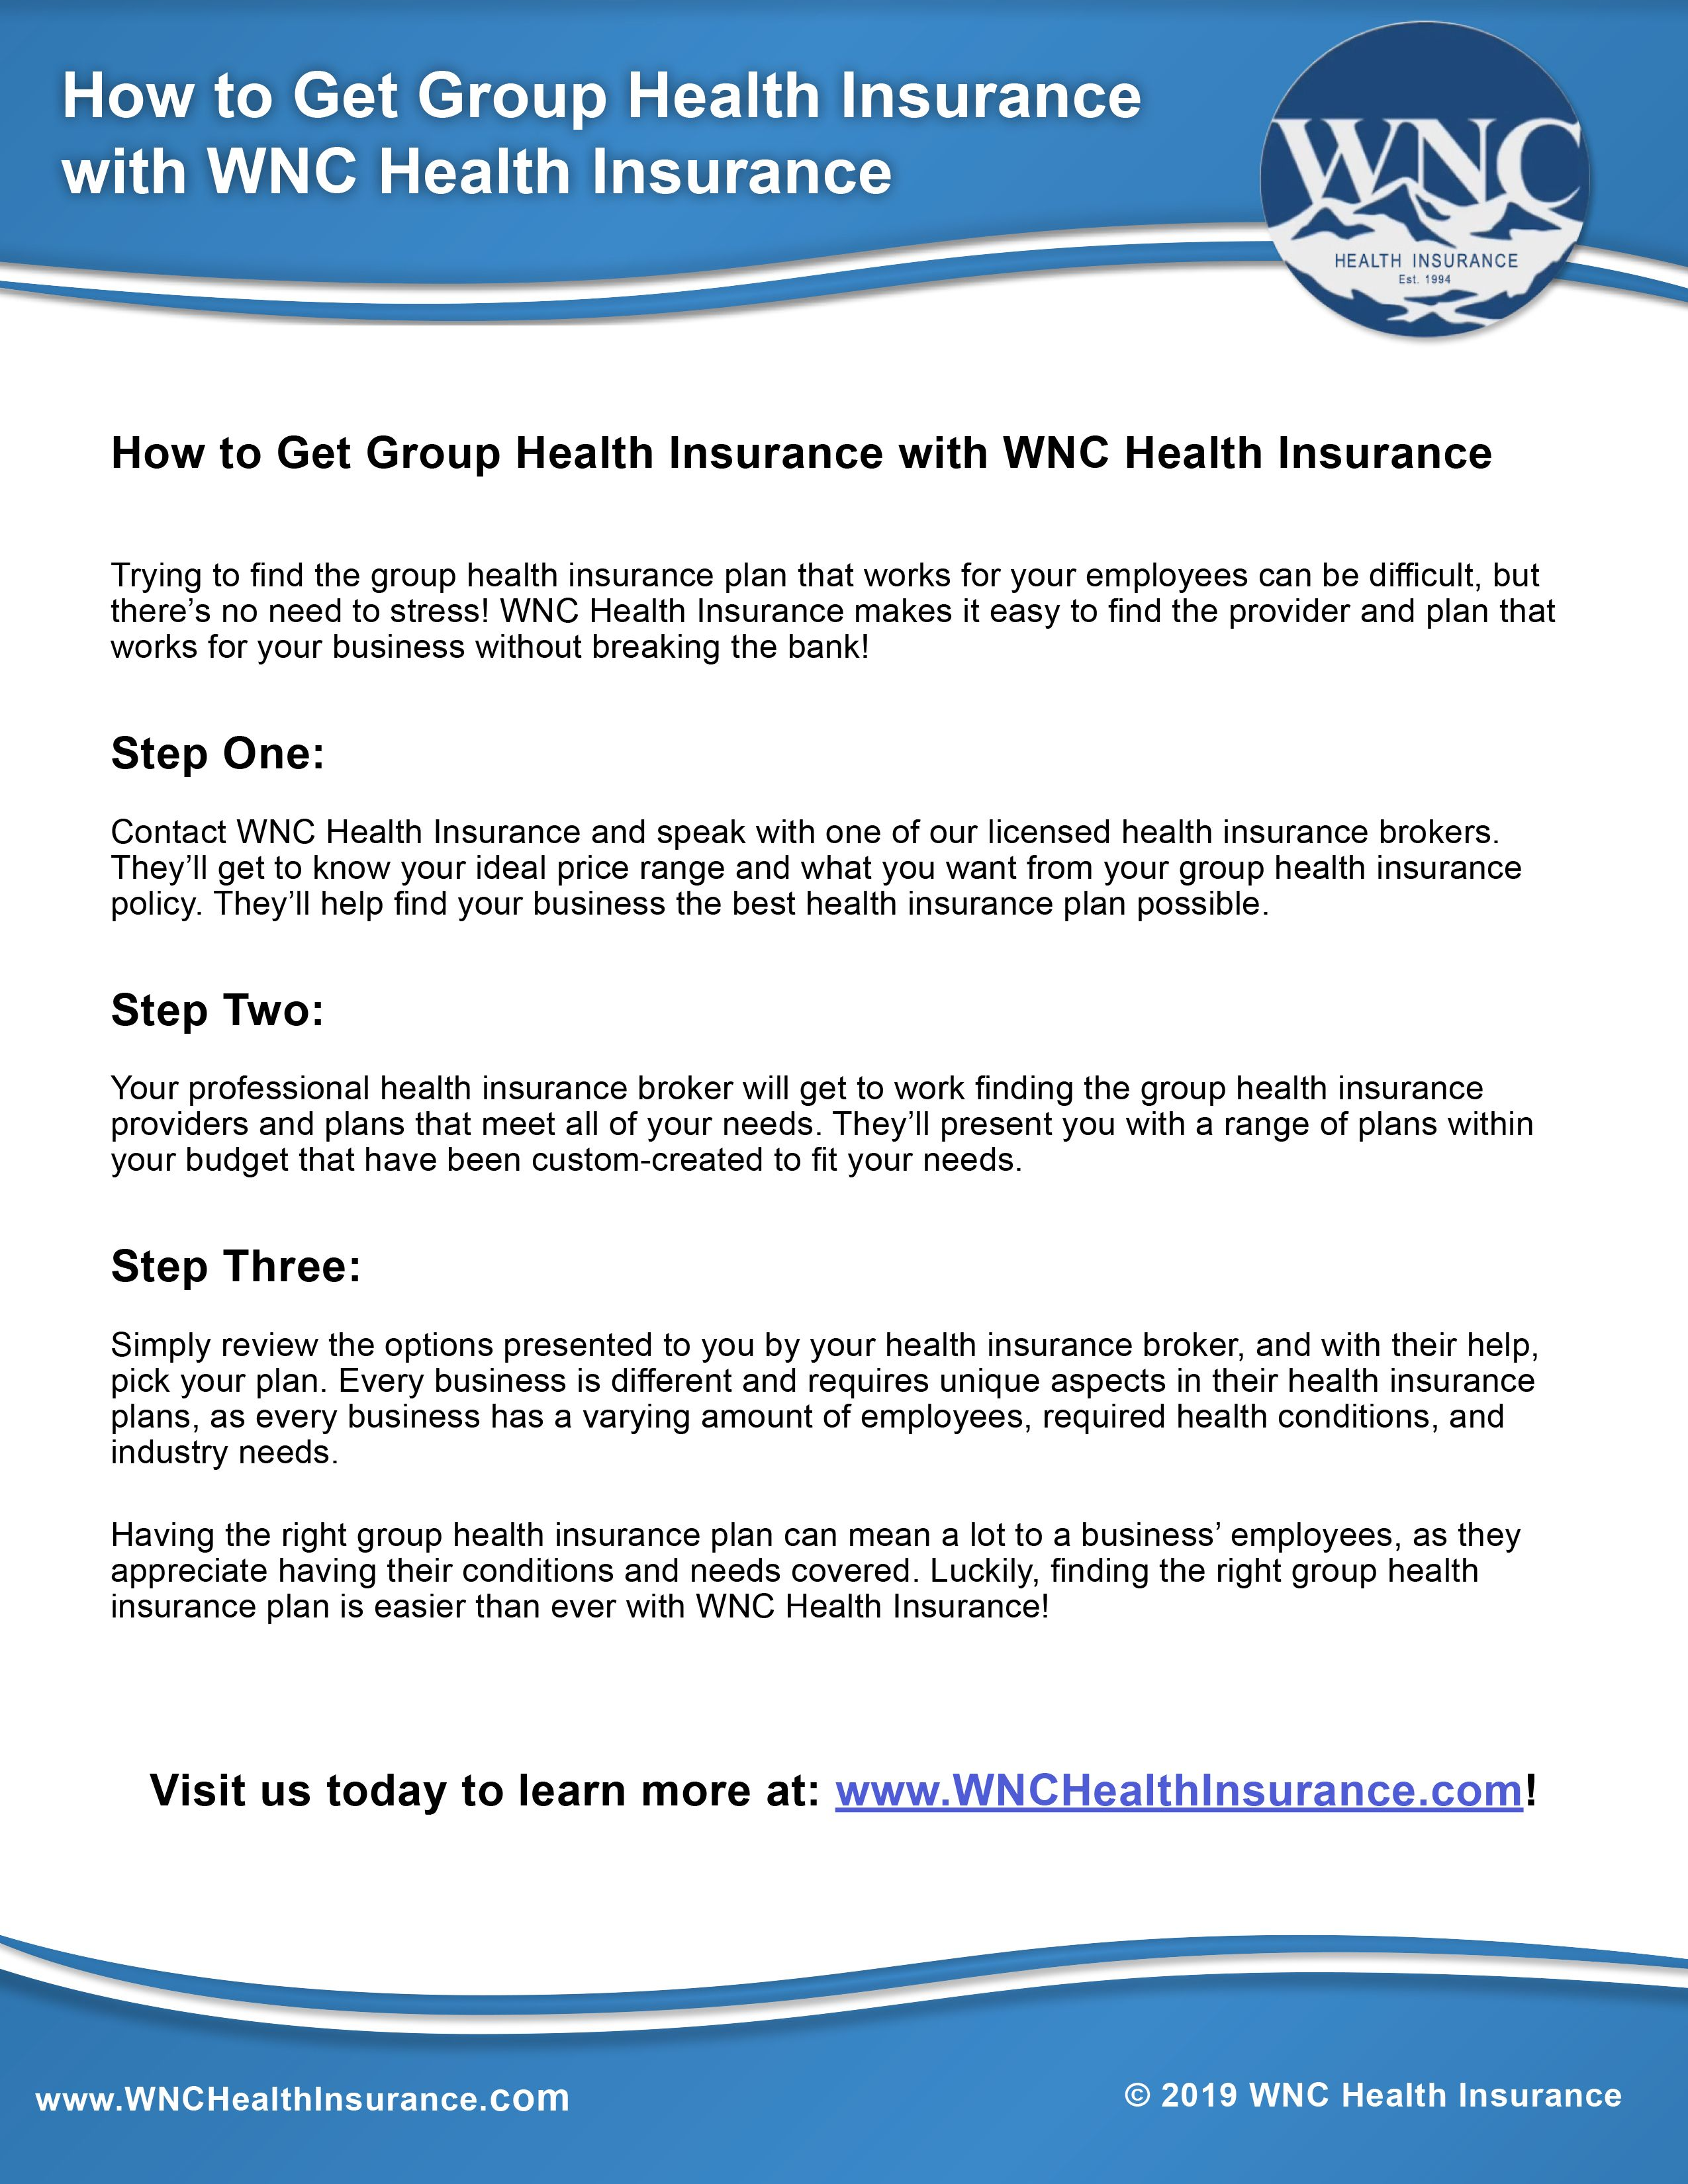 Pin by WNC Health Insurance on Group Health Insurance